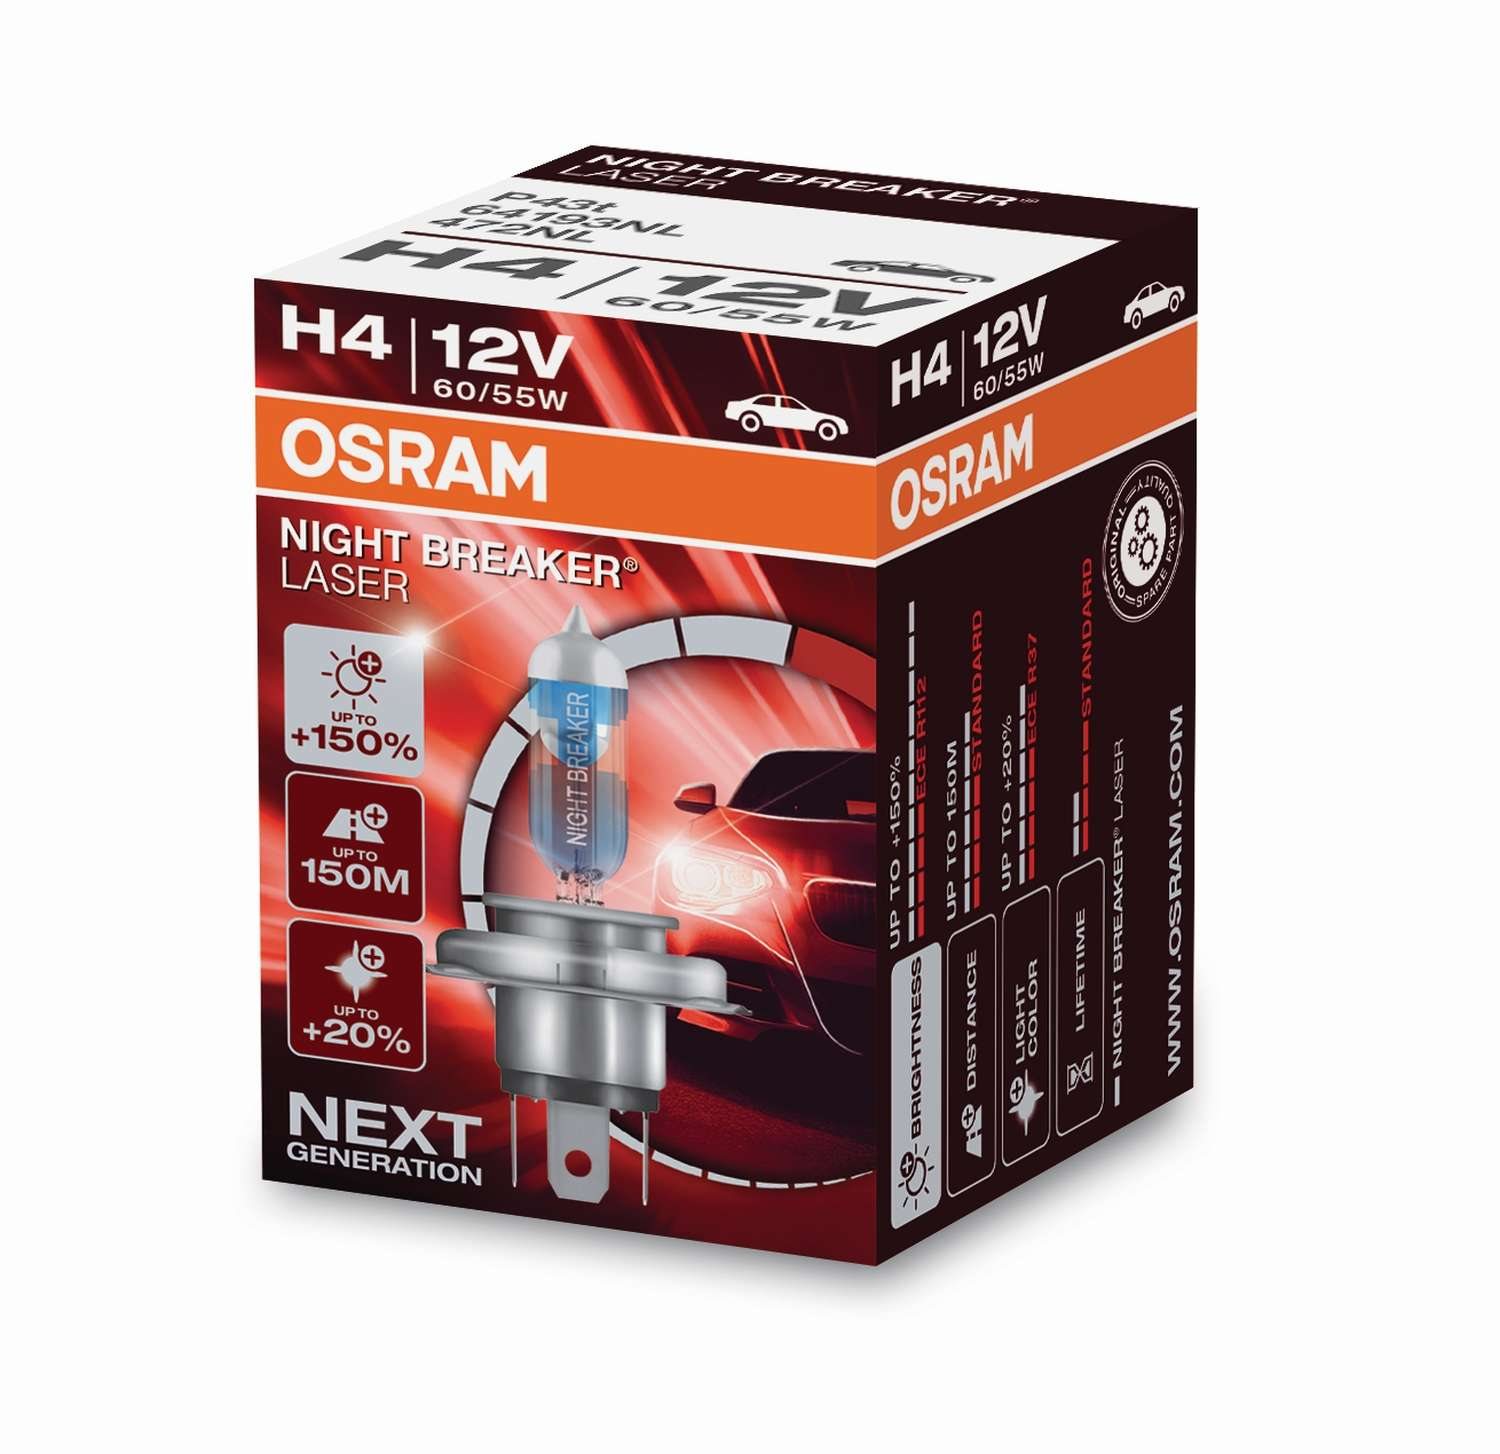 Osram Night Breaker Laser 64193NL H4 P43t-38 12V 60/55W